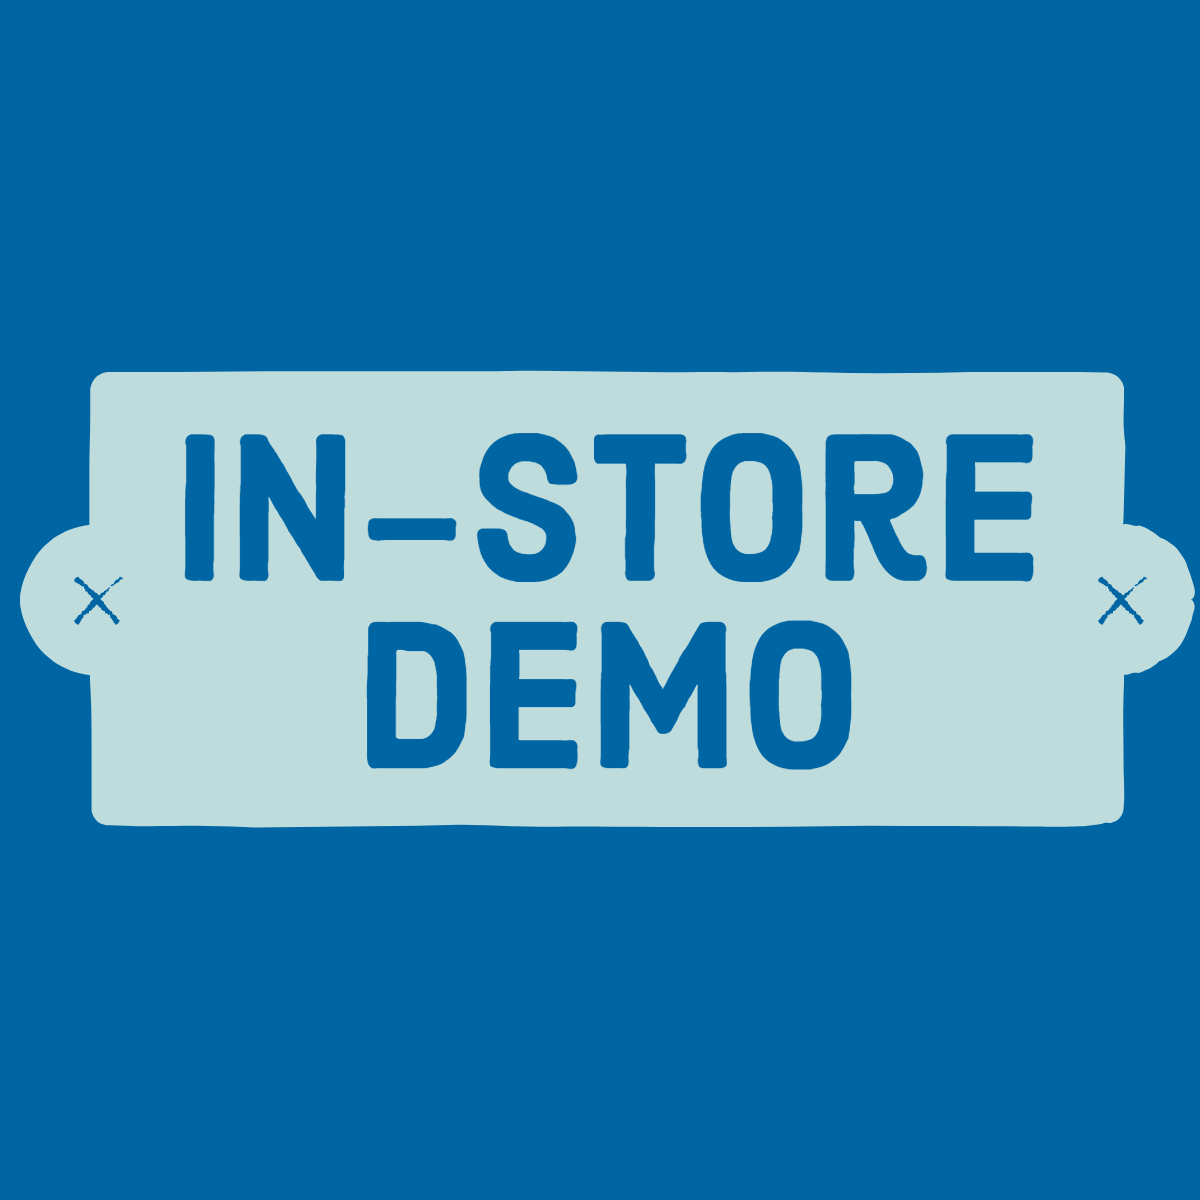 In-Store Demos graphic